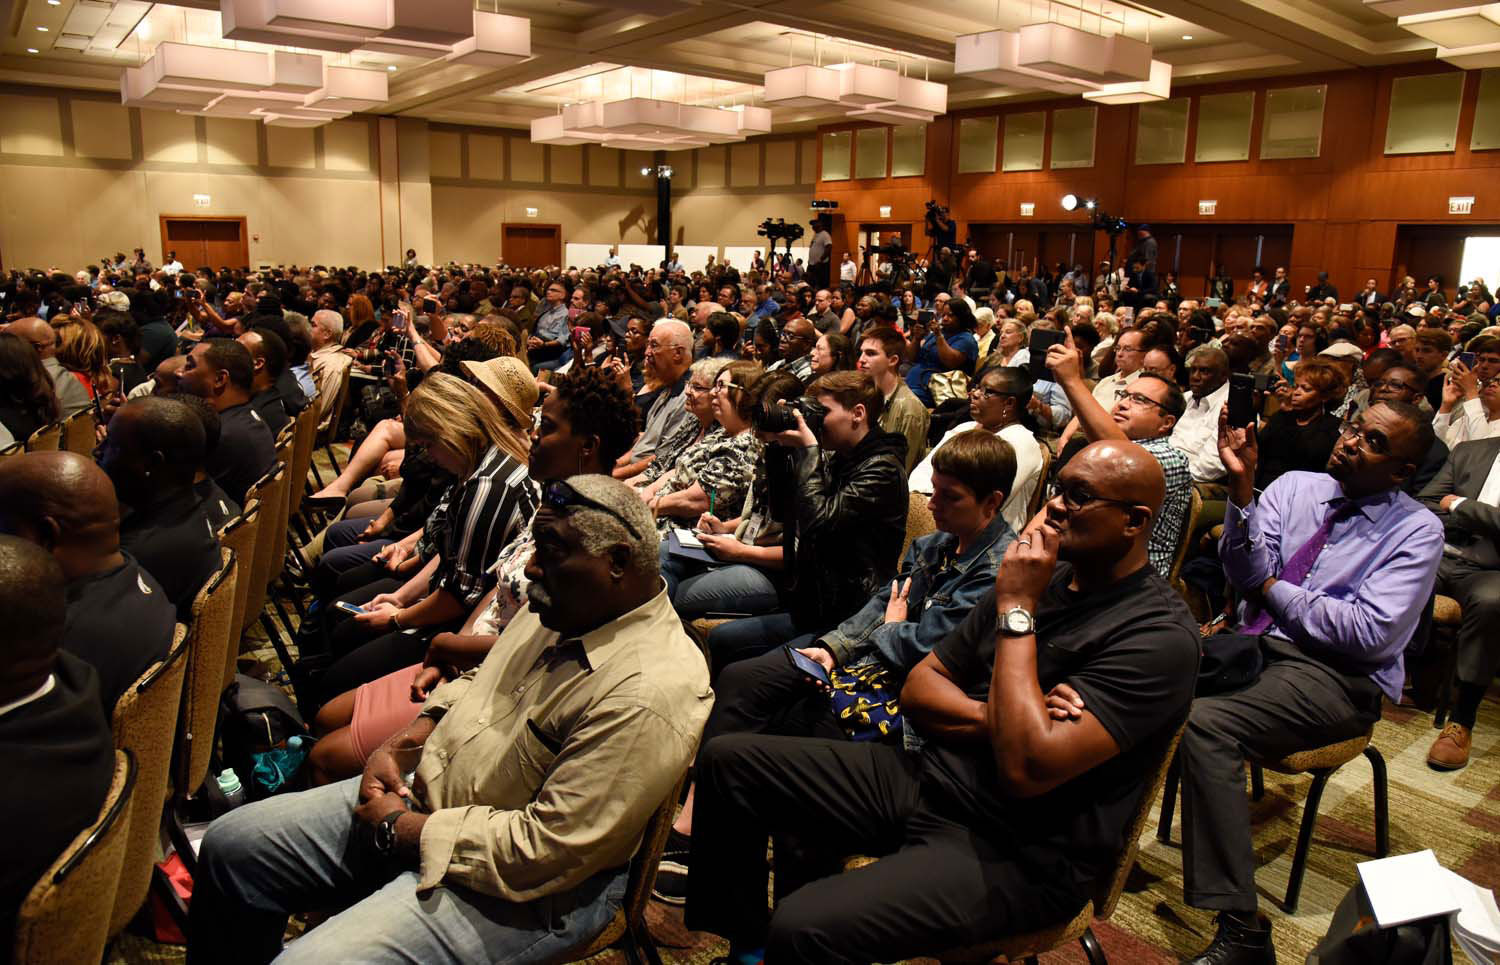 The crowd at the Obama Foundation public meeting in Chicago.